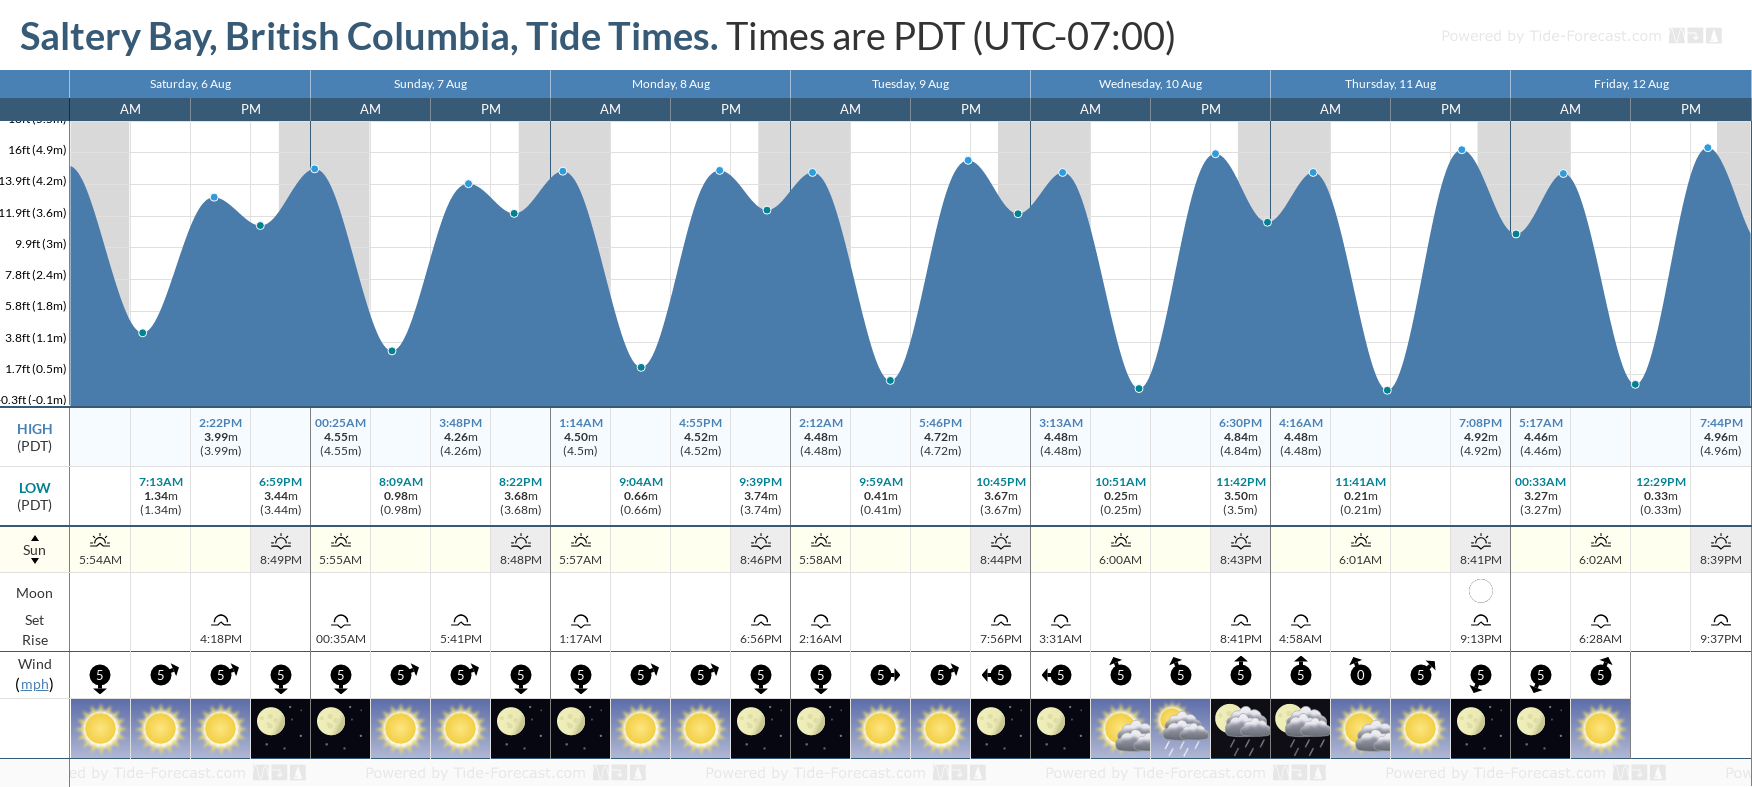 Saltery Bay, British Columbia Tide Chart including high and low tide tide times for the next 7 days